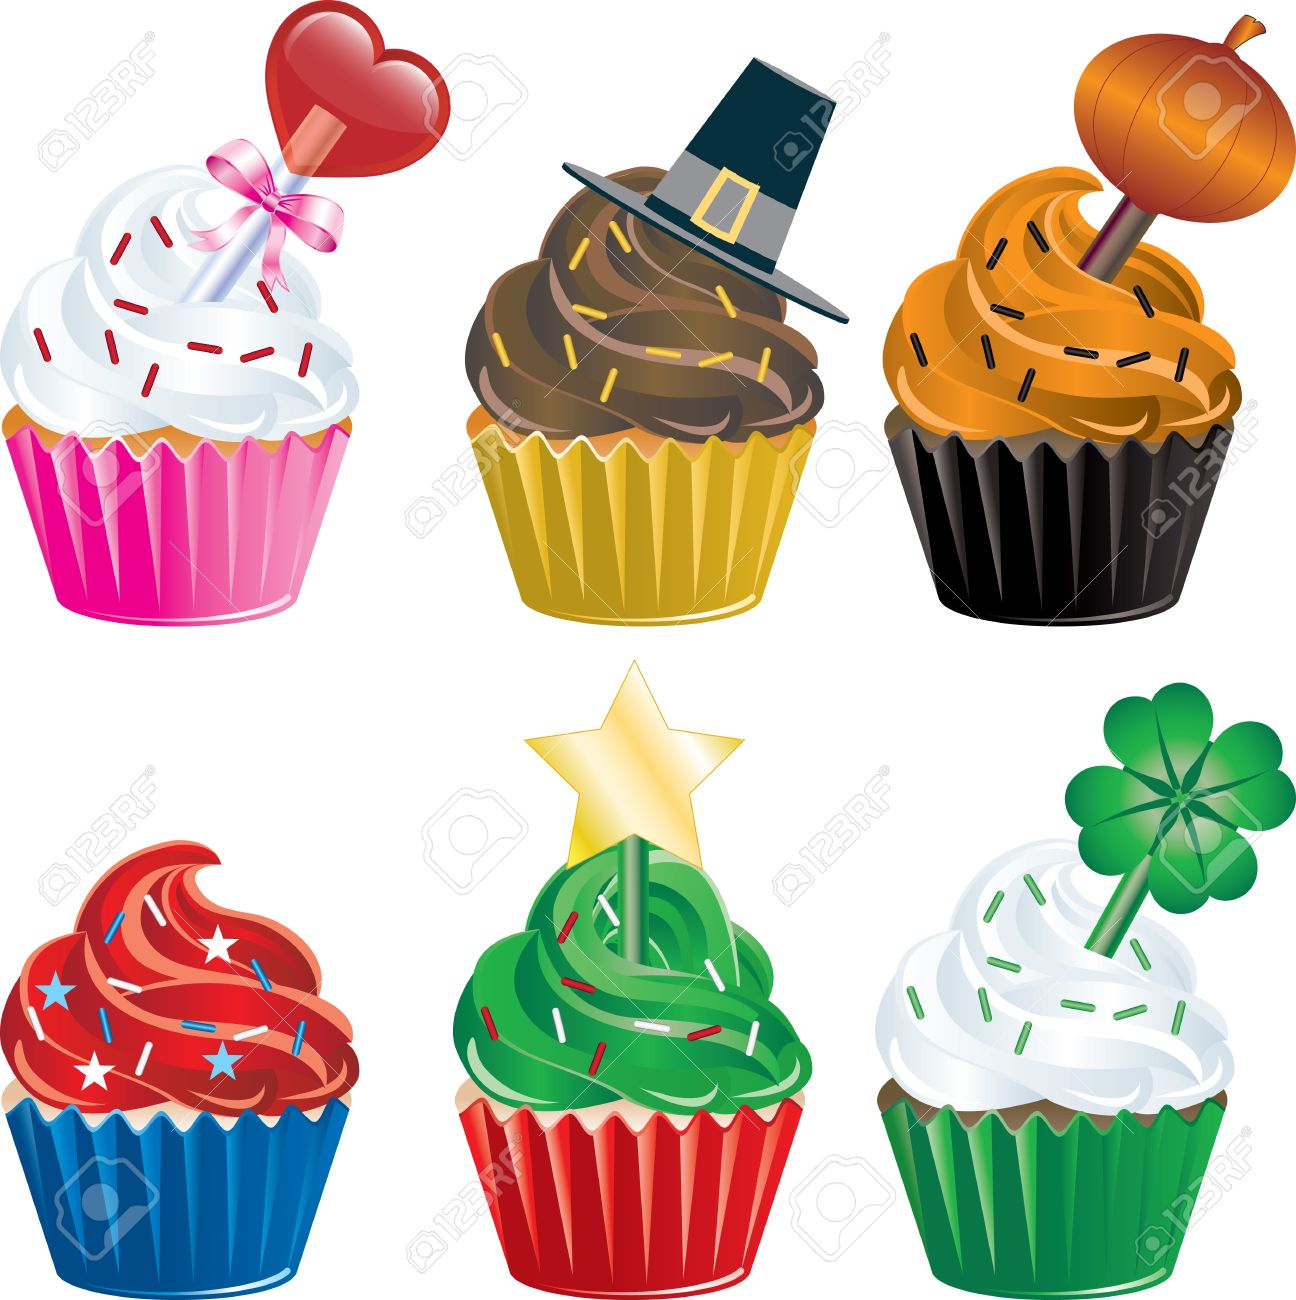 six different Holiday Cupcakes. Christmas, Halloween, Thanksgiving, Valentines Day , Independence Day and St. Patricks Day. Stock Vector - 8484330